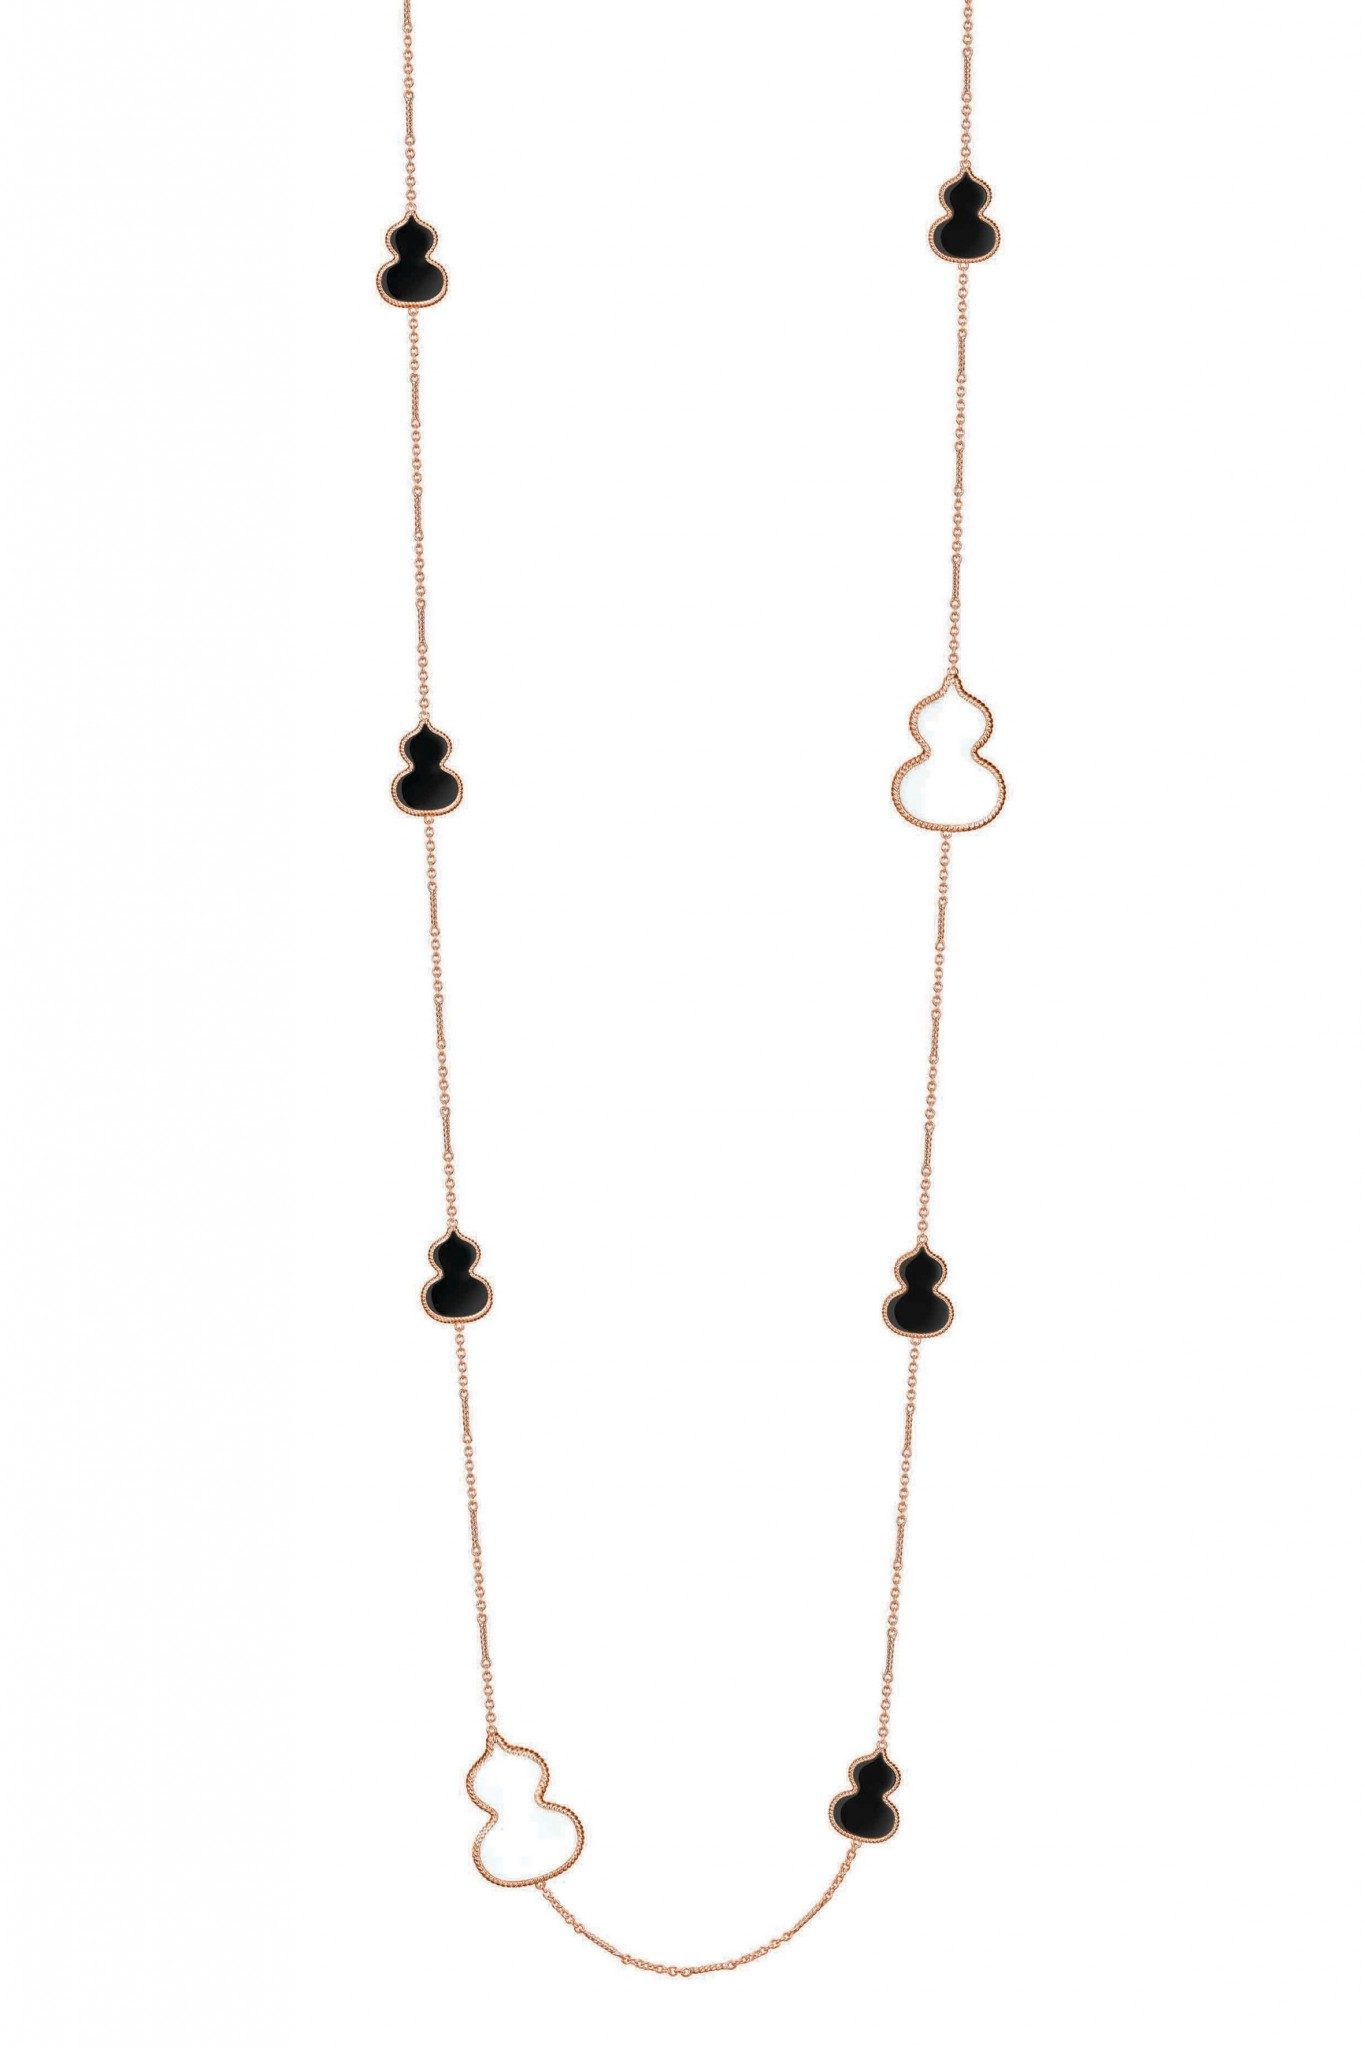 qeelin-joaillerie-chinoise-europeenne-adaptation-occident-paris-collection-wulu-collier